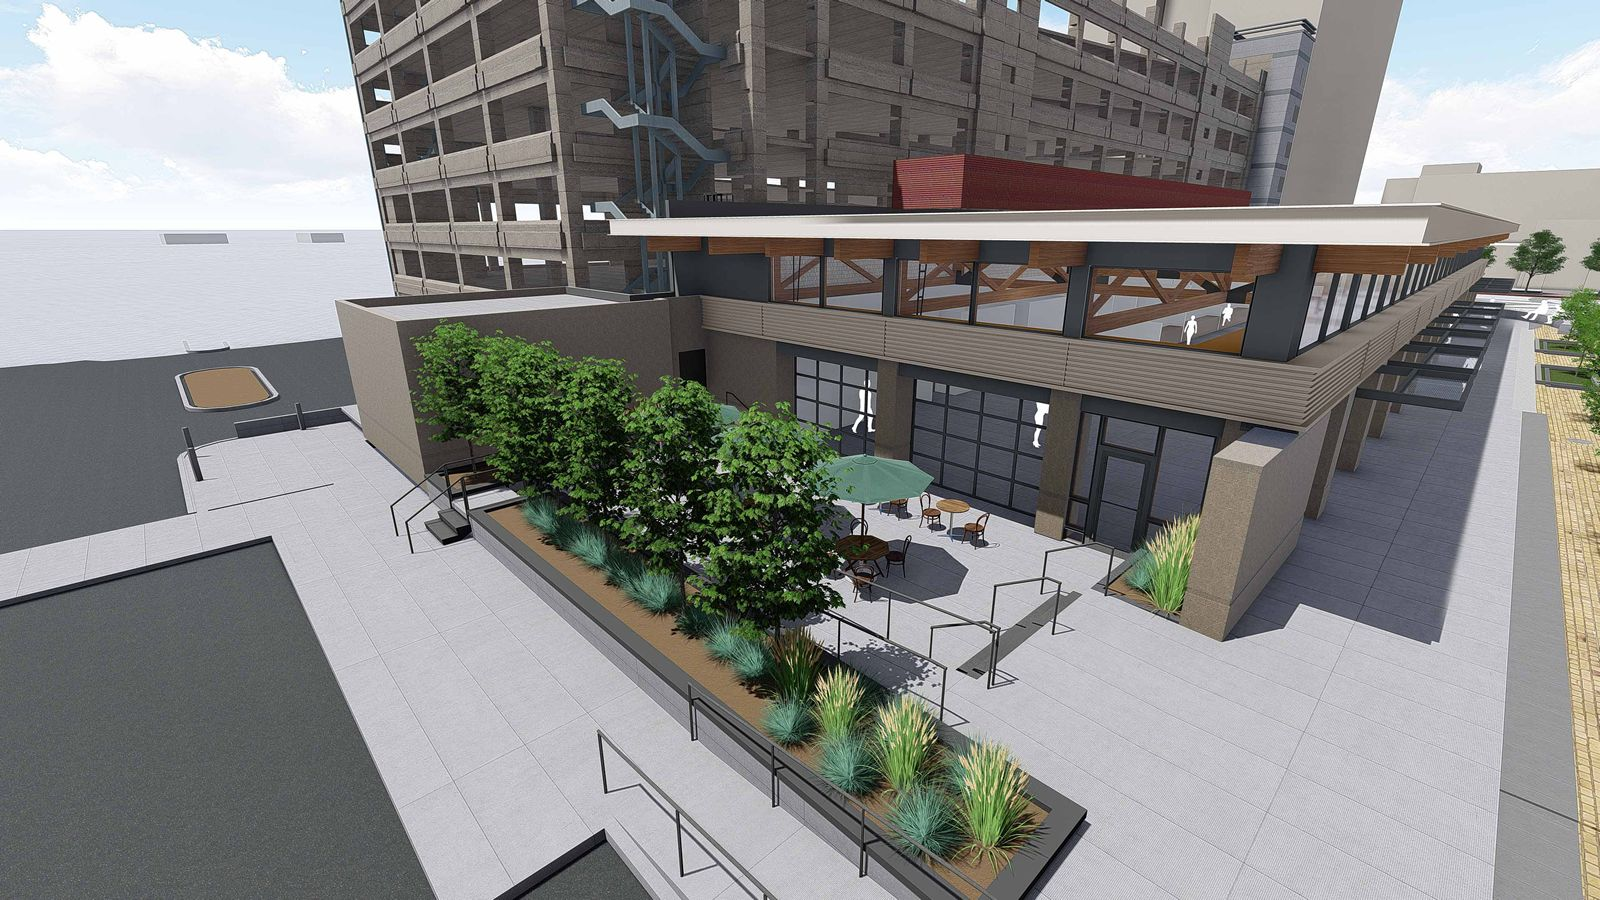 Junction Food & Drink Prepares to Bring Chef-Driven Fare to Colorado Center